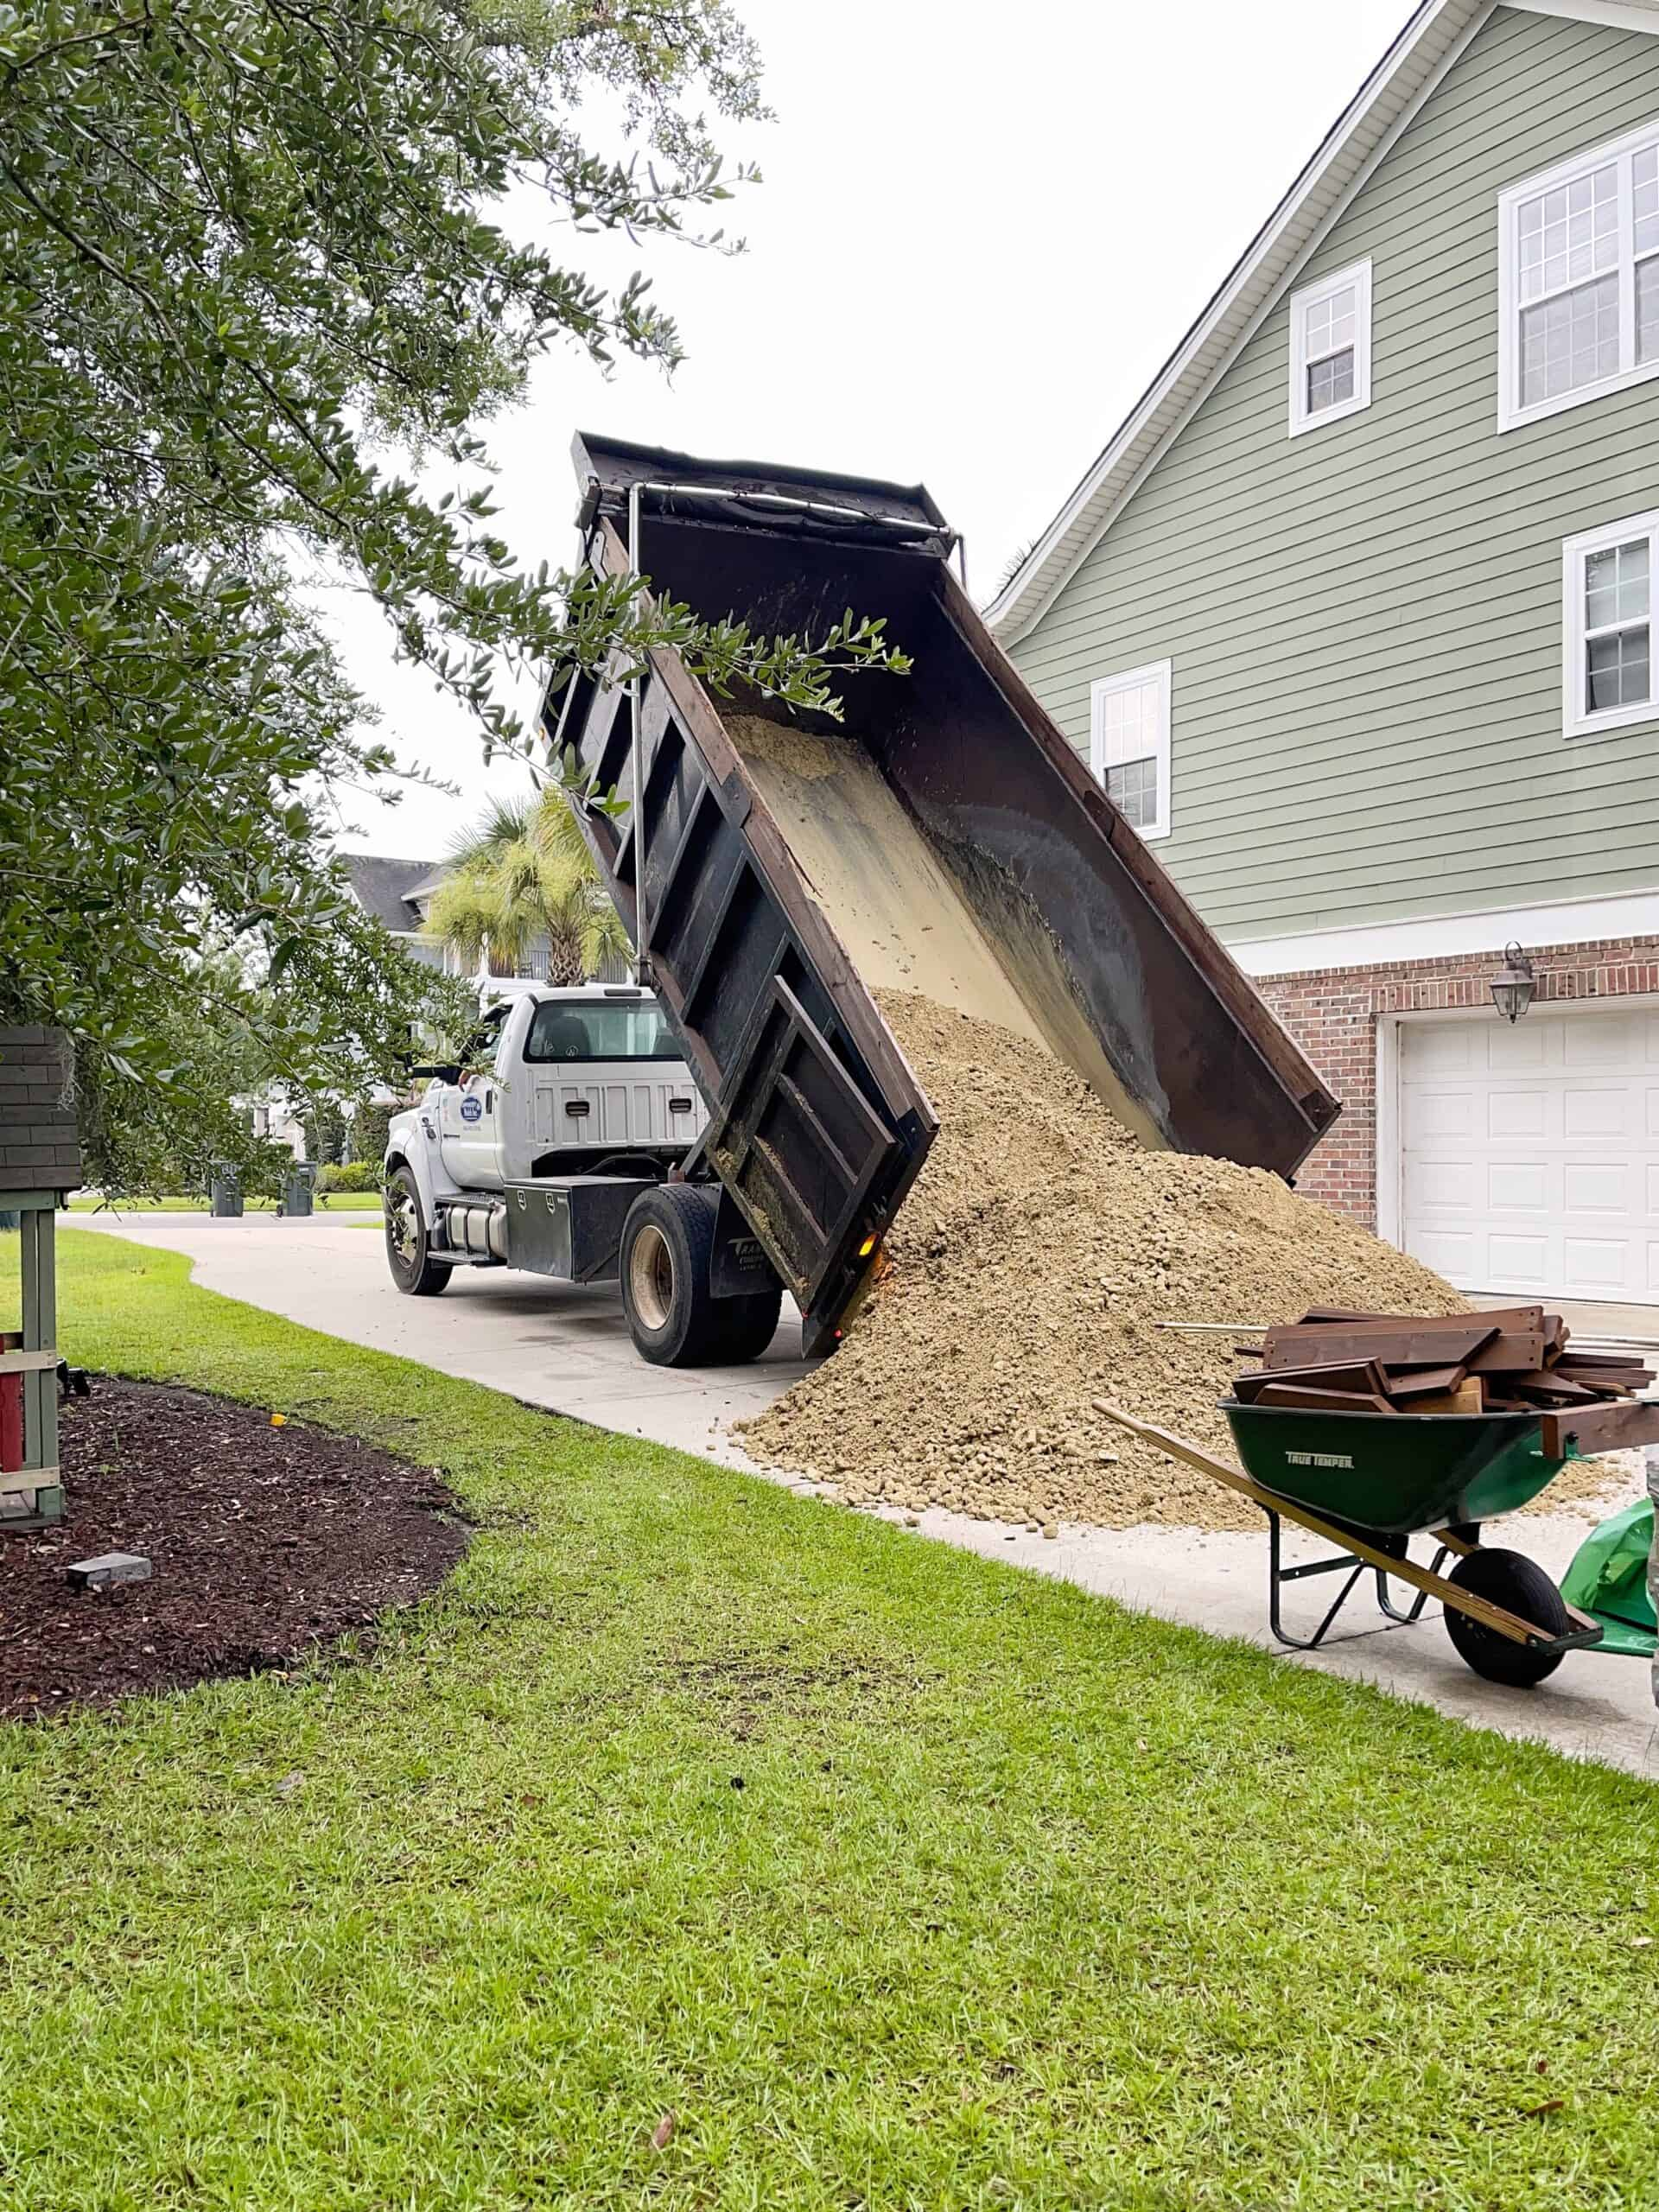 Dump druck in driveway delivering compact material and sand.